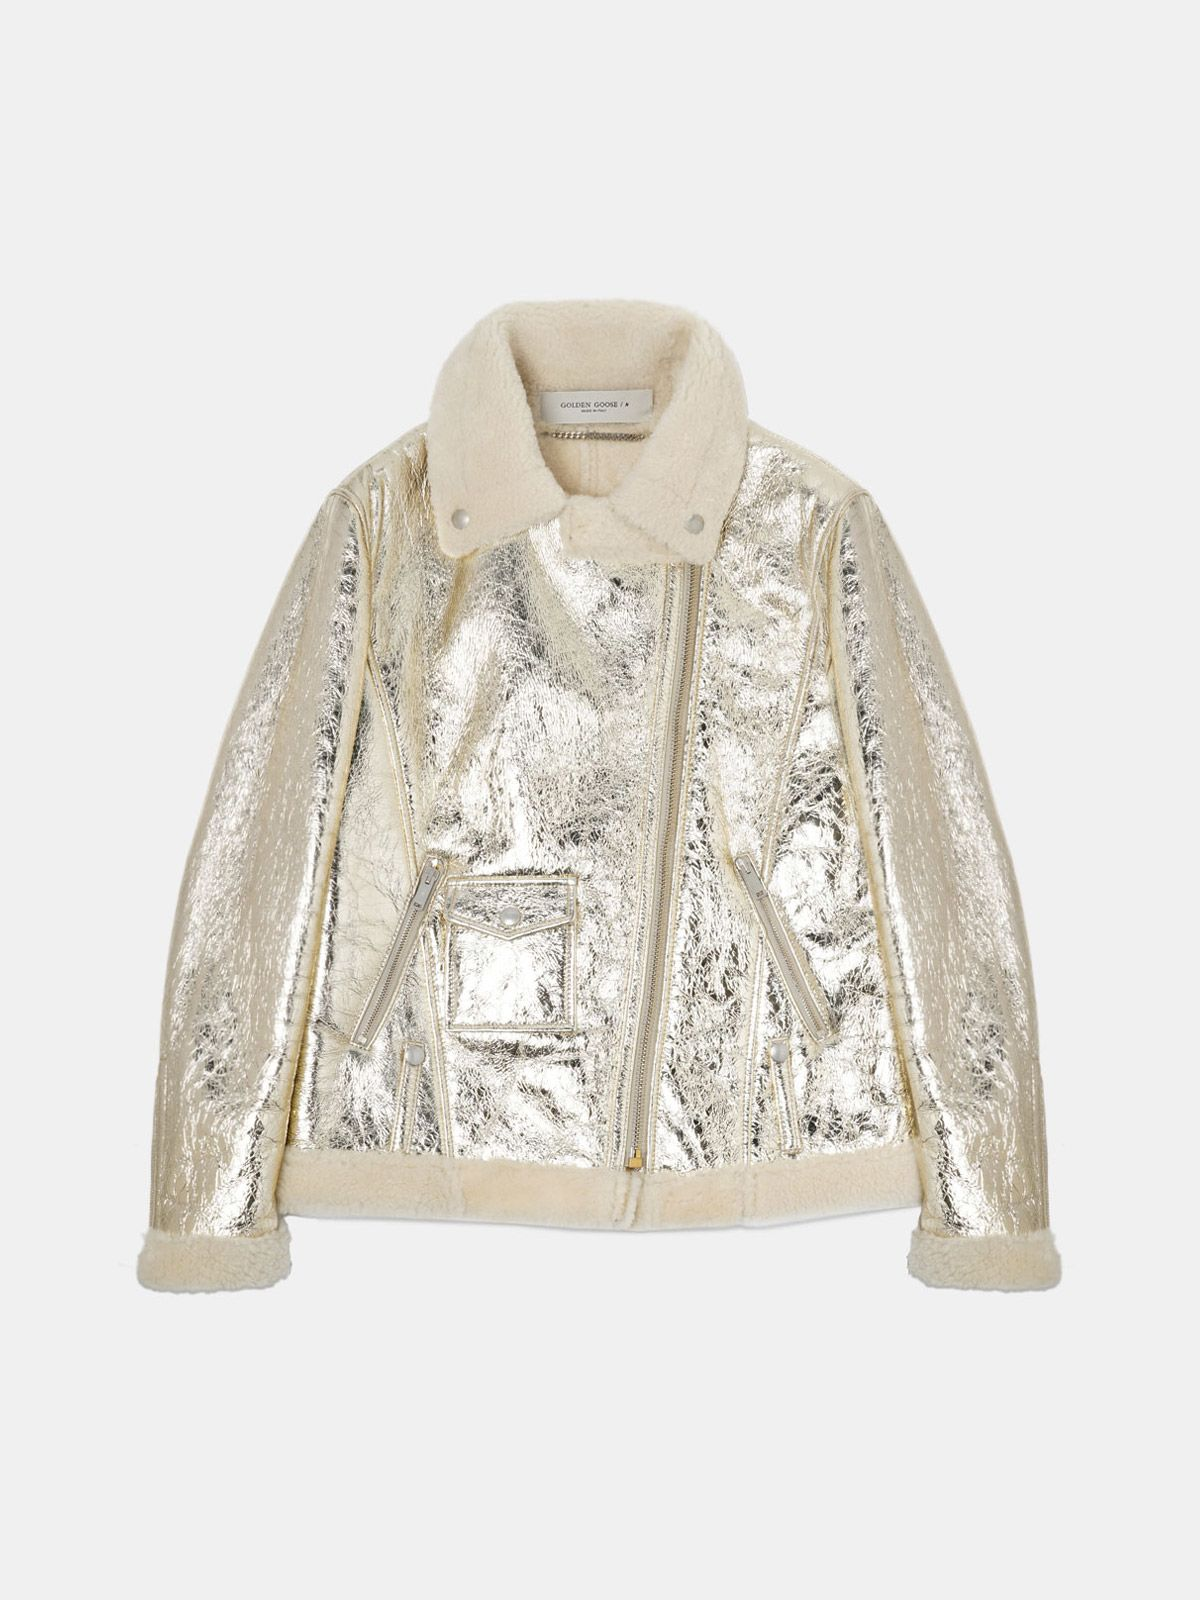 Assia sheepskin jacket in laminated leather with shearling lining